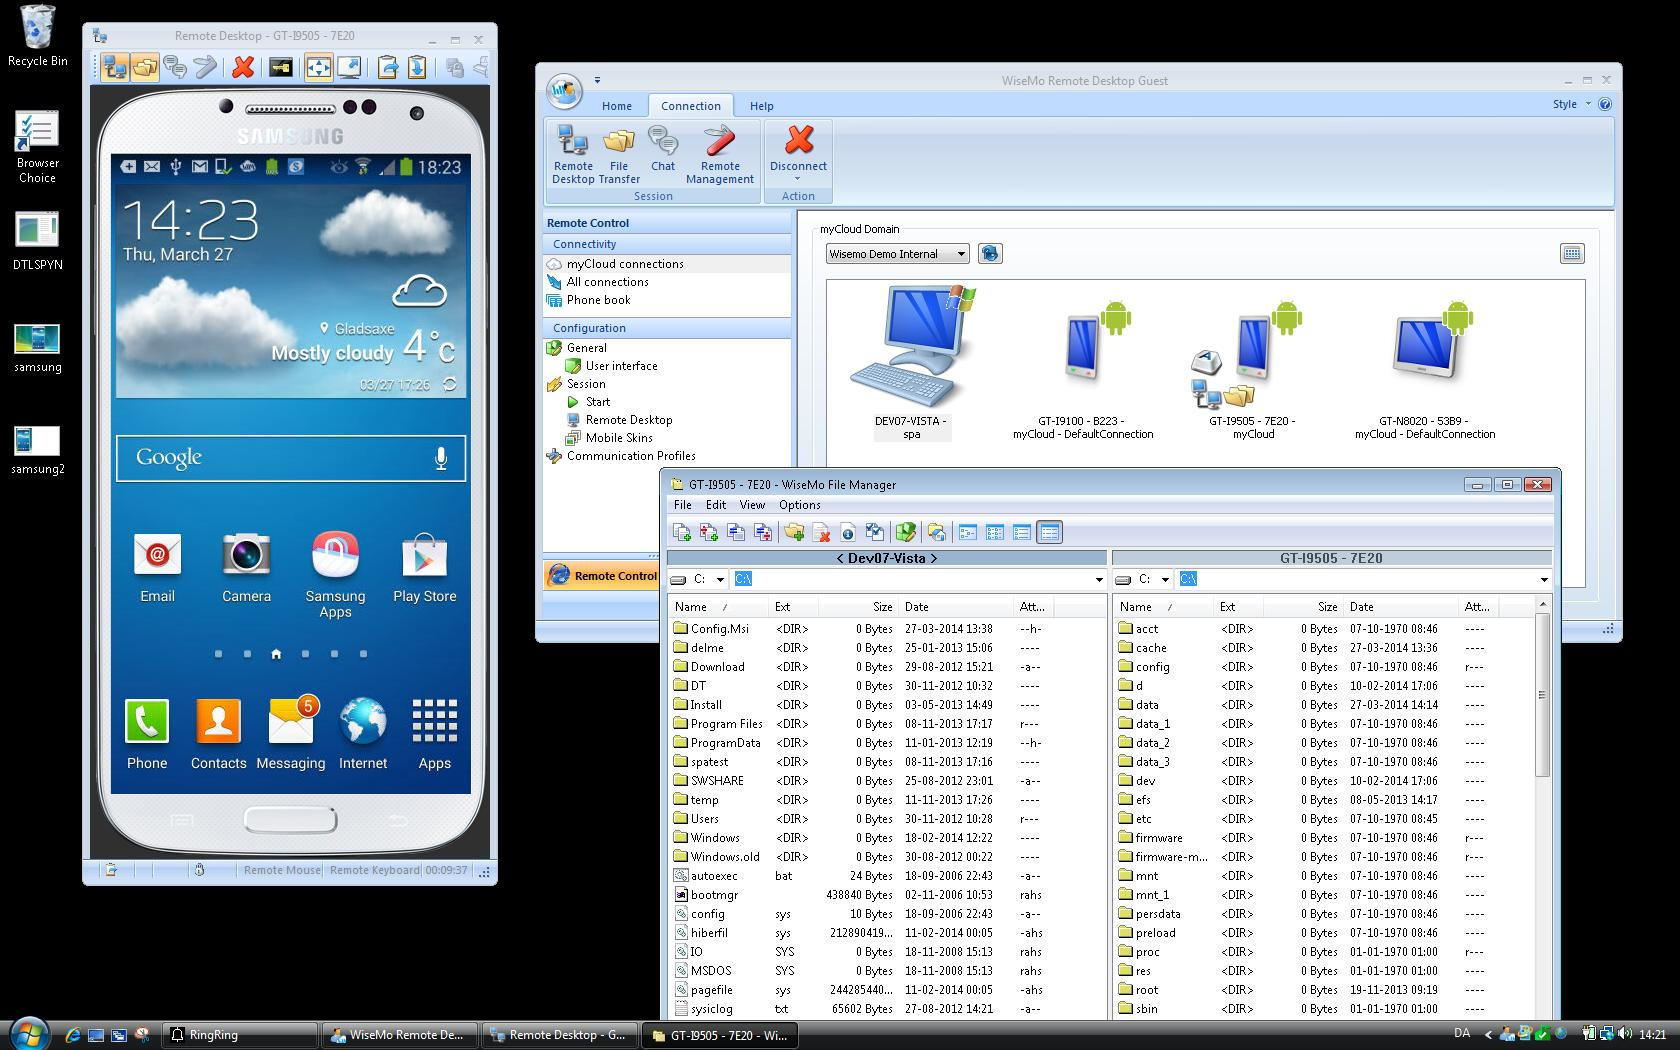 Windows to Android file transfer and remote control